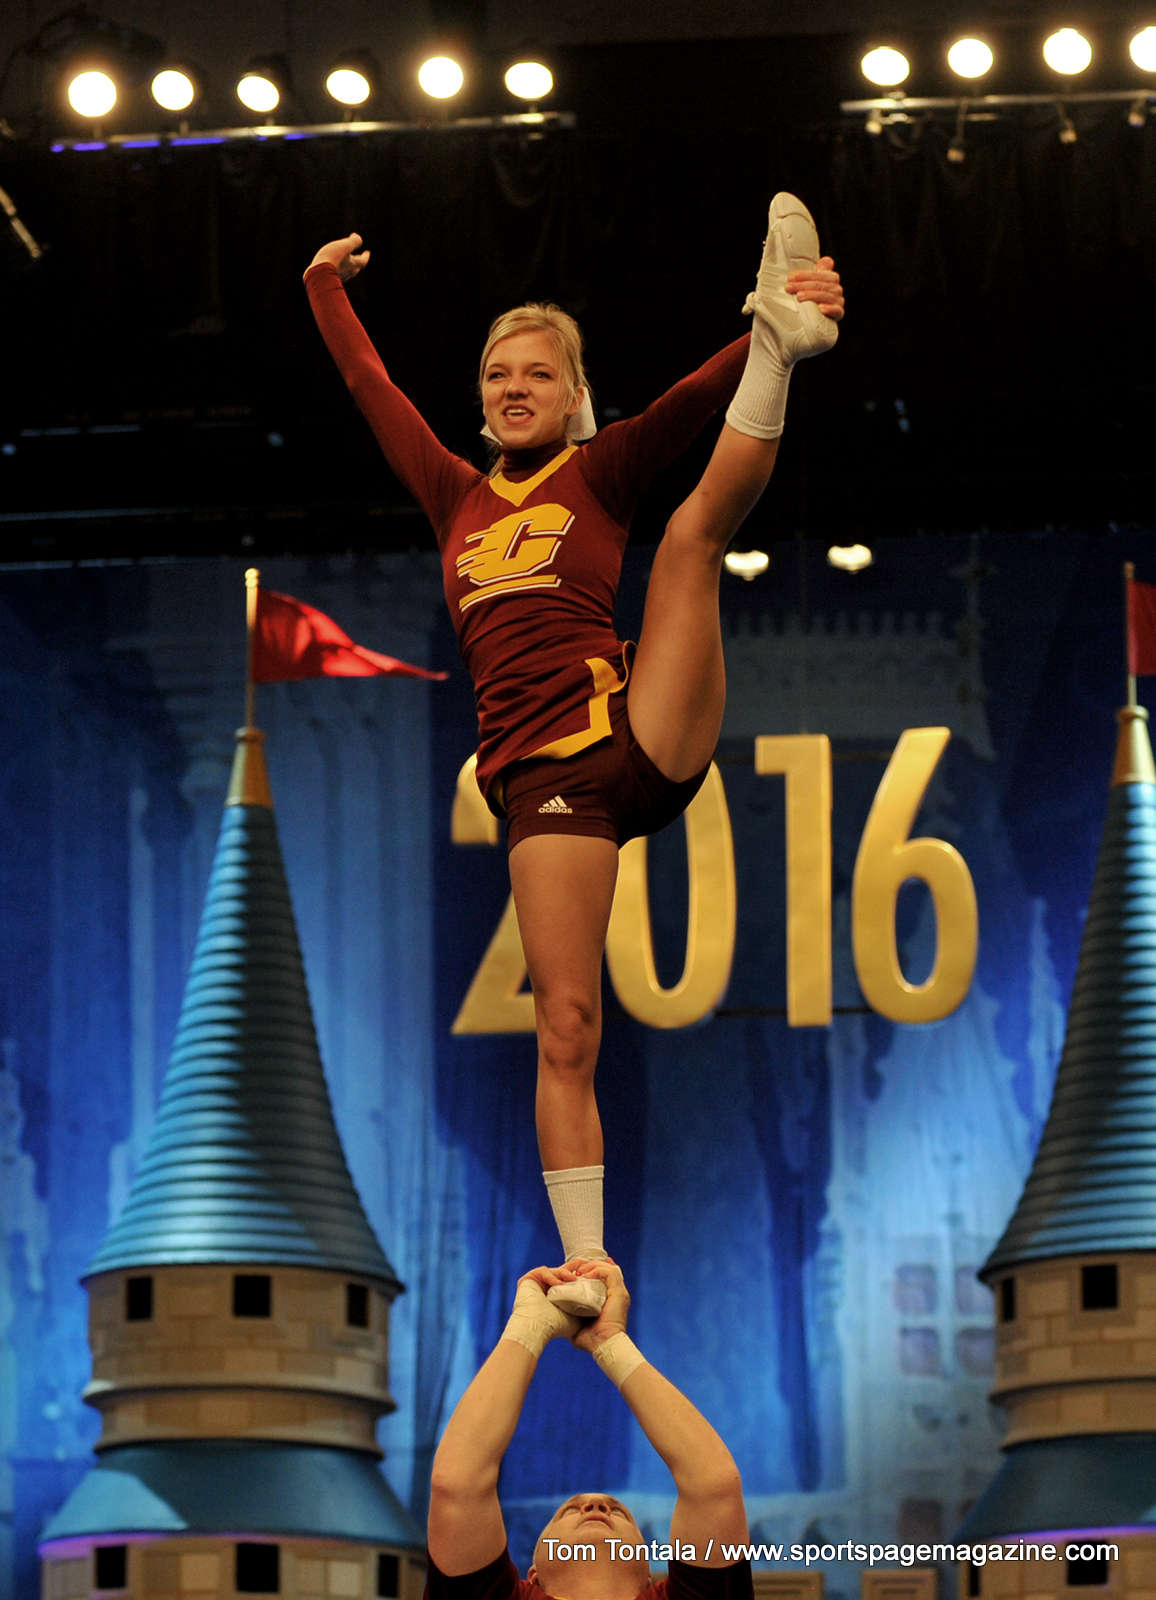 Gallery NCAA Cheerleading UCA College Championships Semi Finals Division 1 Division 2